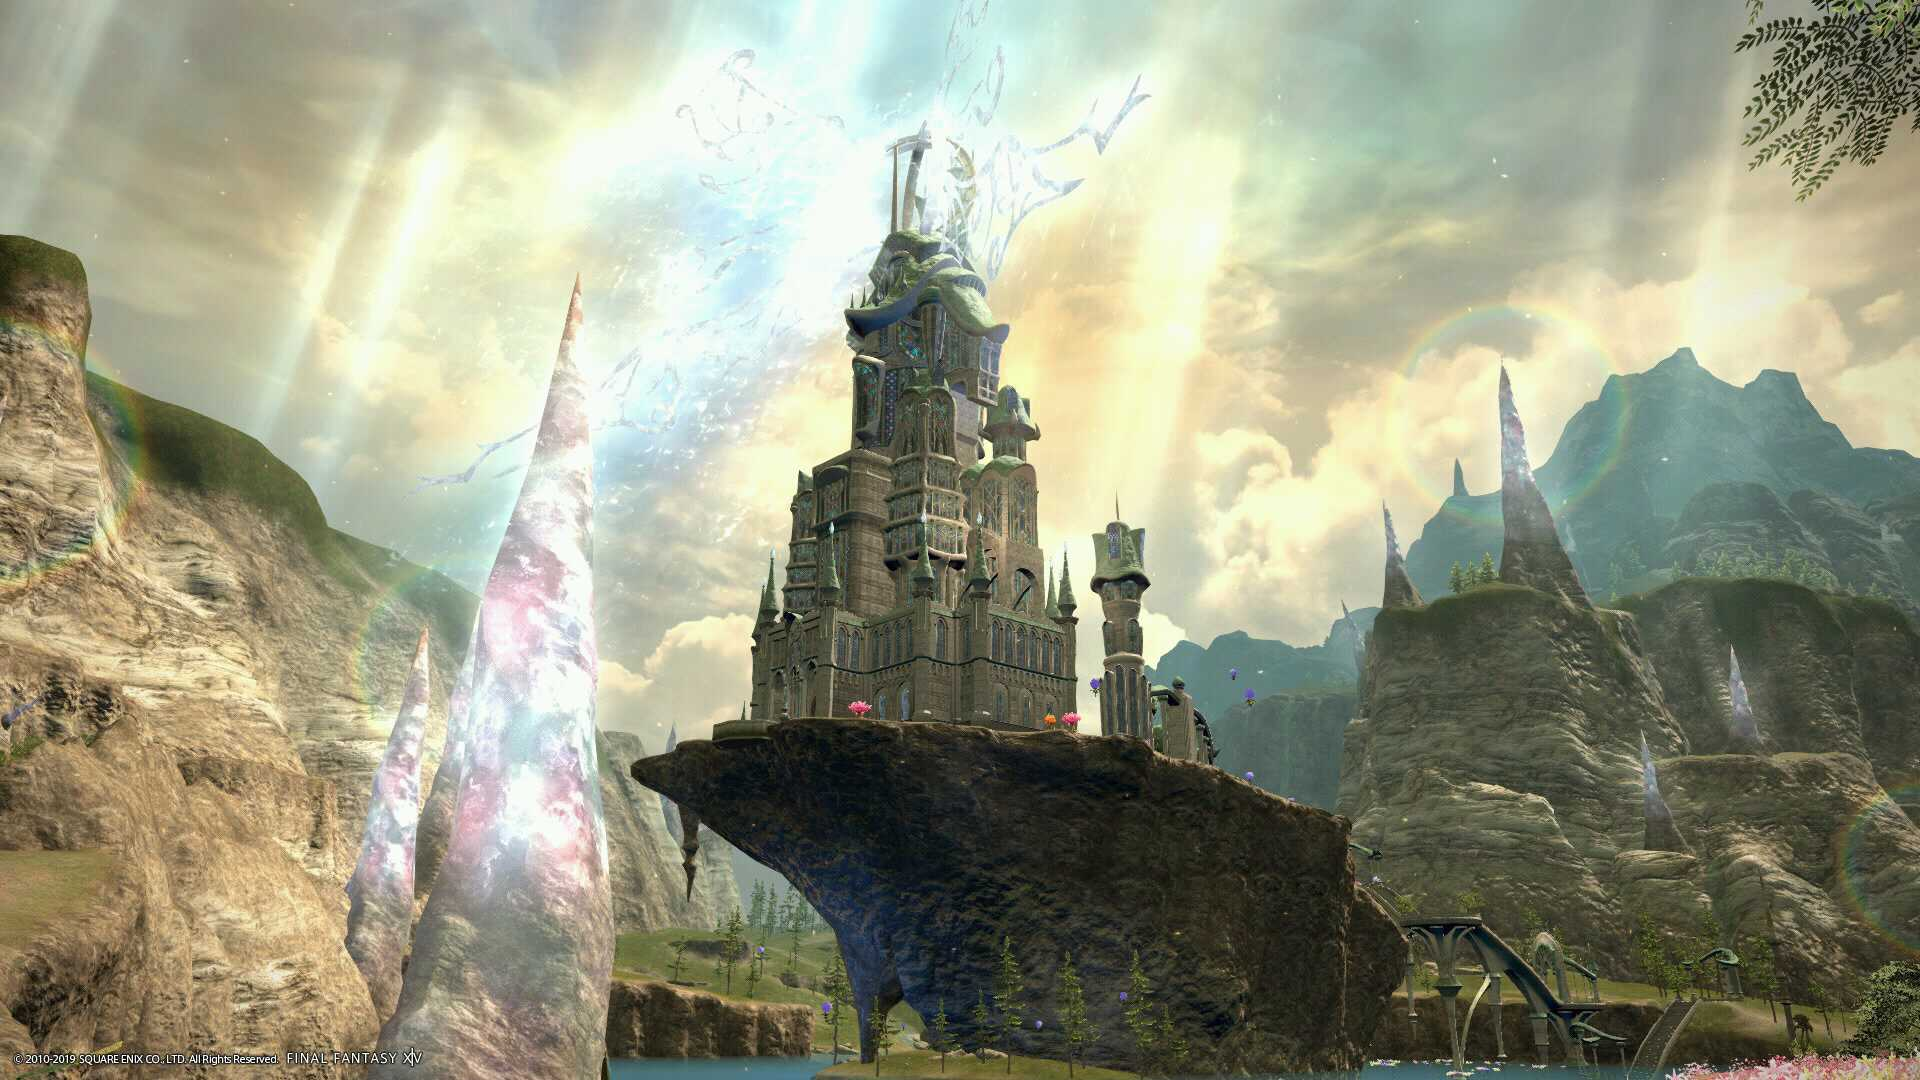 New to Final Fantasy XIV? We asked two veterans for tips for